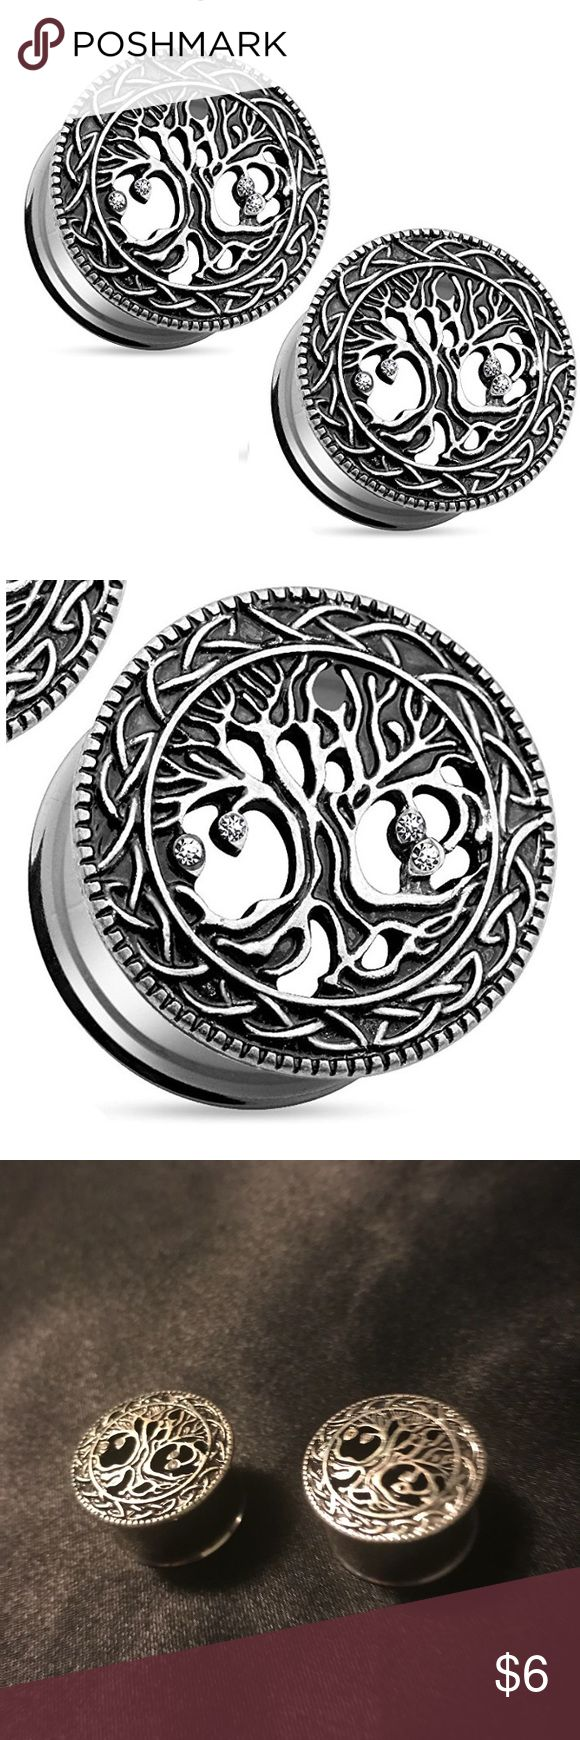 3/4in gauge tree of life earrings/plugs w/ CZ gems EUC. Surgical Steel and cubic zirconia gems. Gorgeous plugs that look like oxidized silver and diamonds! Jewelry Earrings